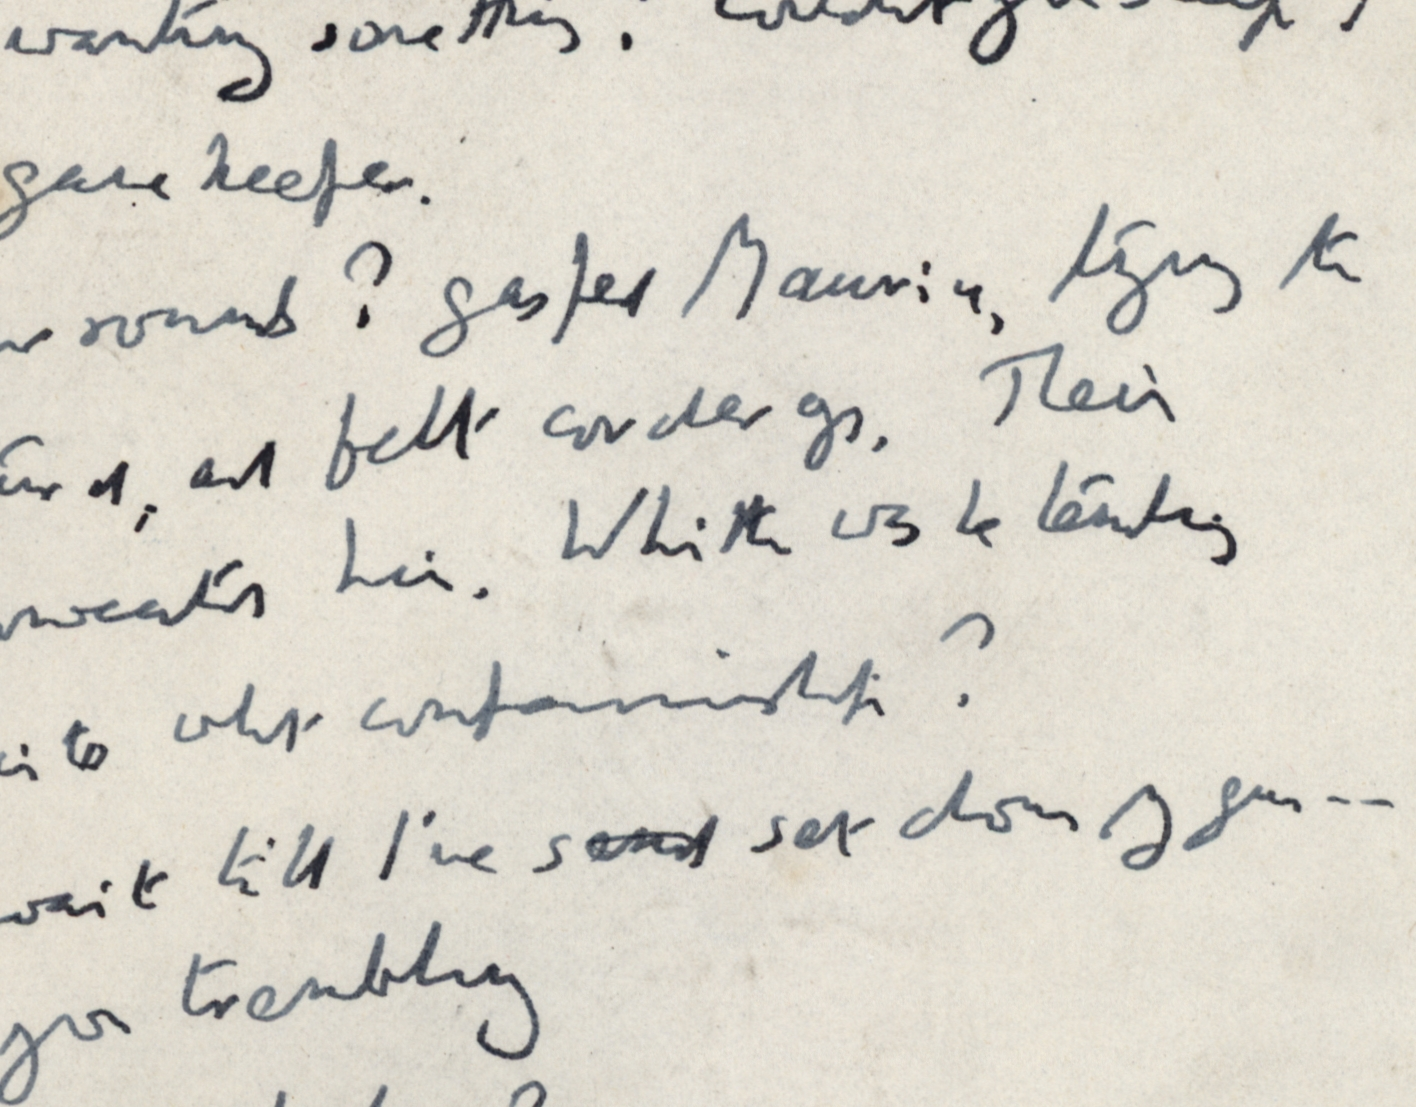 Extract from the 'Maurice' manuscript